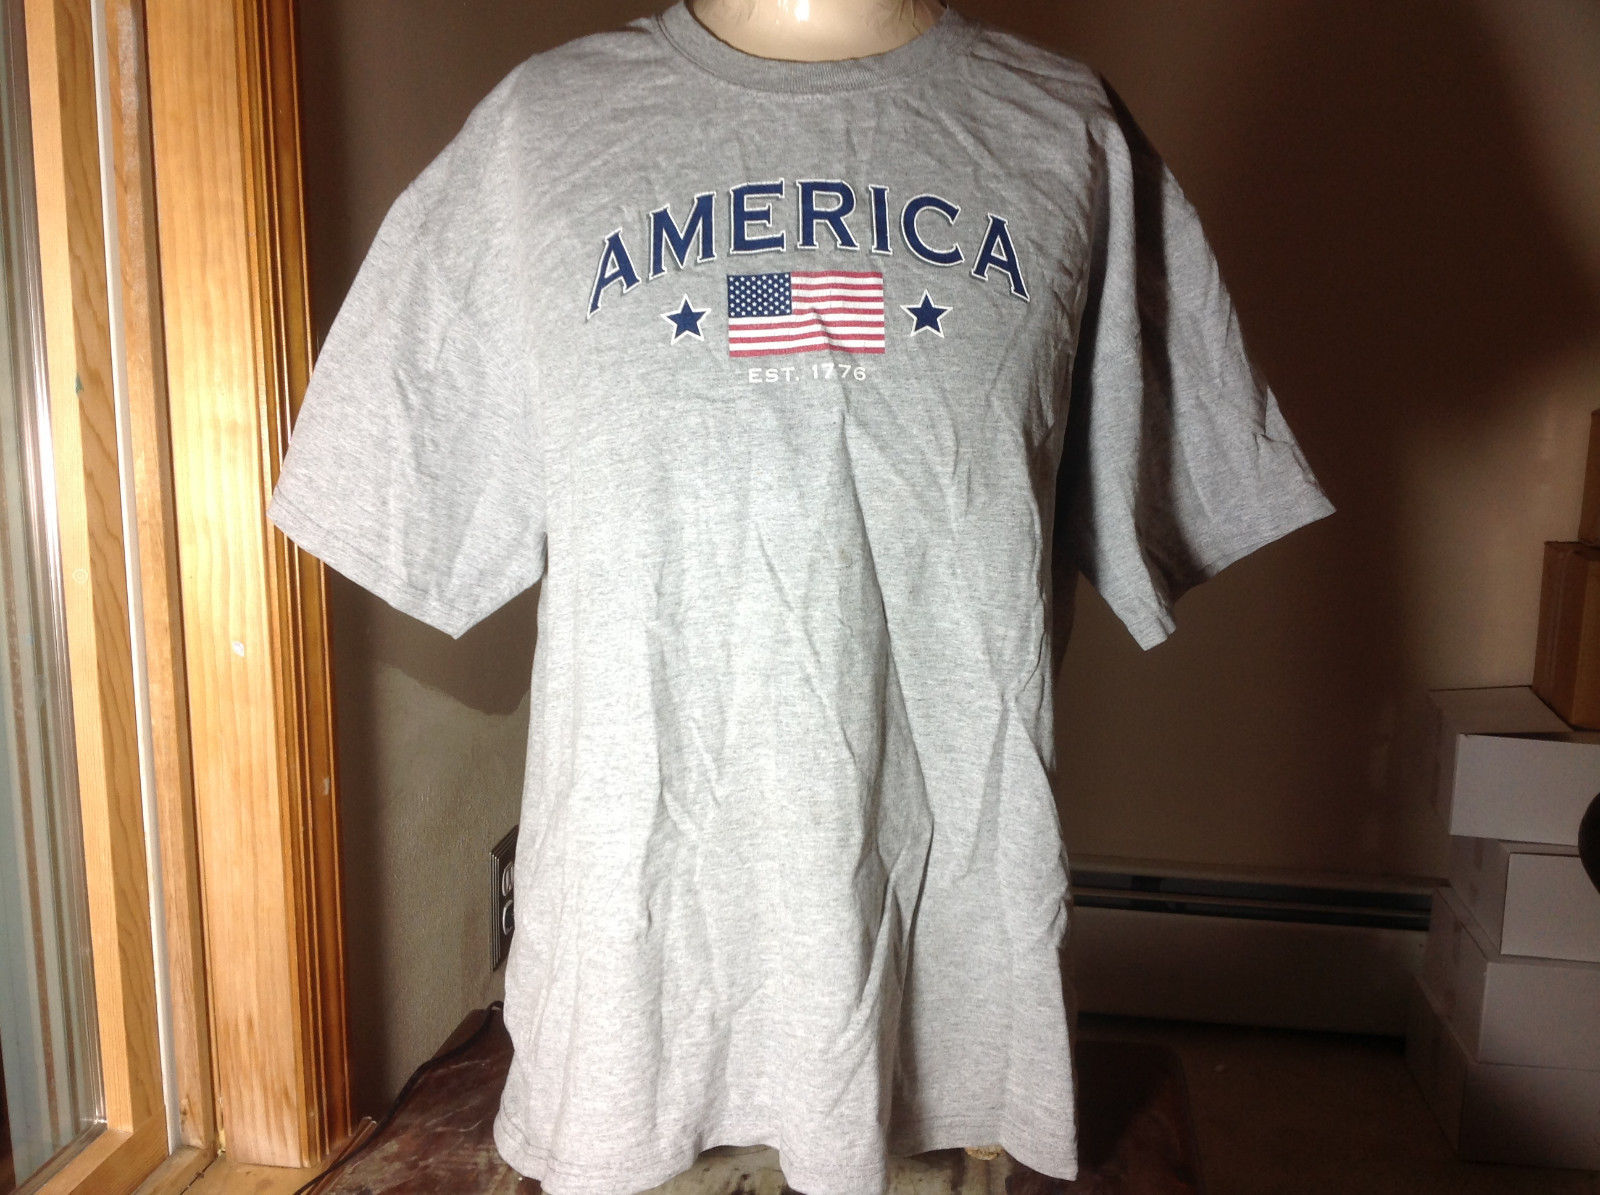 Sonoma Light Gray Short Sleeve T-Shirt America and American Flag on Front Size L